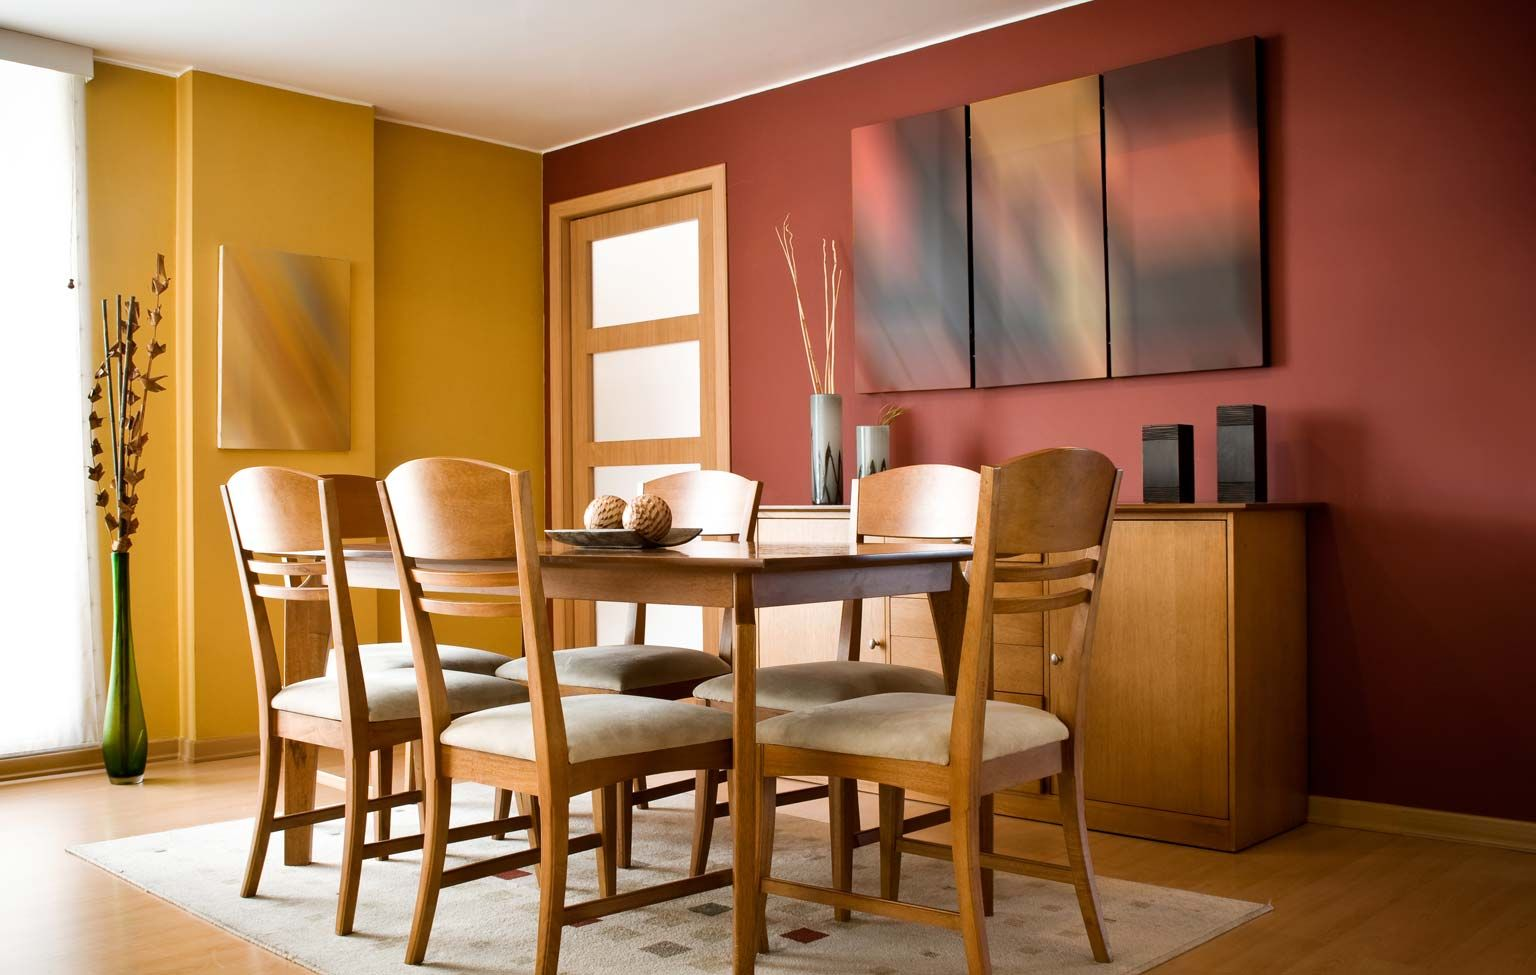 10 Dining Room Paint Color Ideas And Inspiration Gallery Dining Room Colors Dining Room Color Palette Dining Room Paint